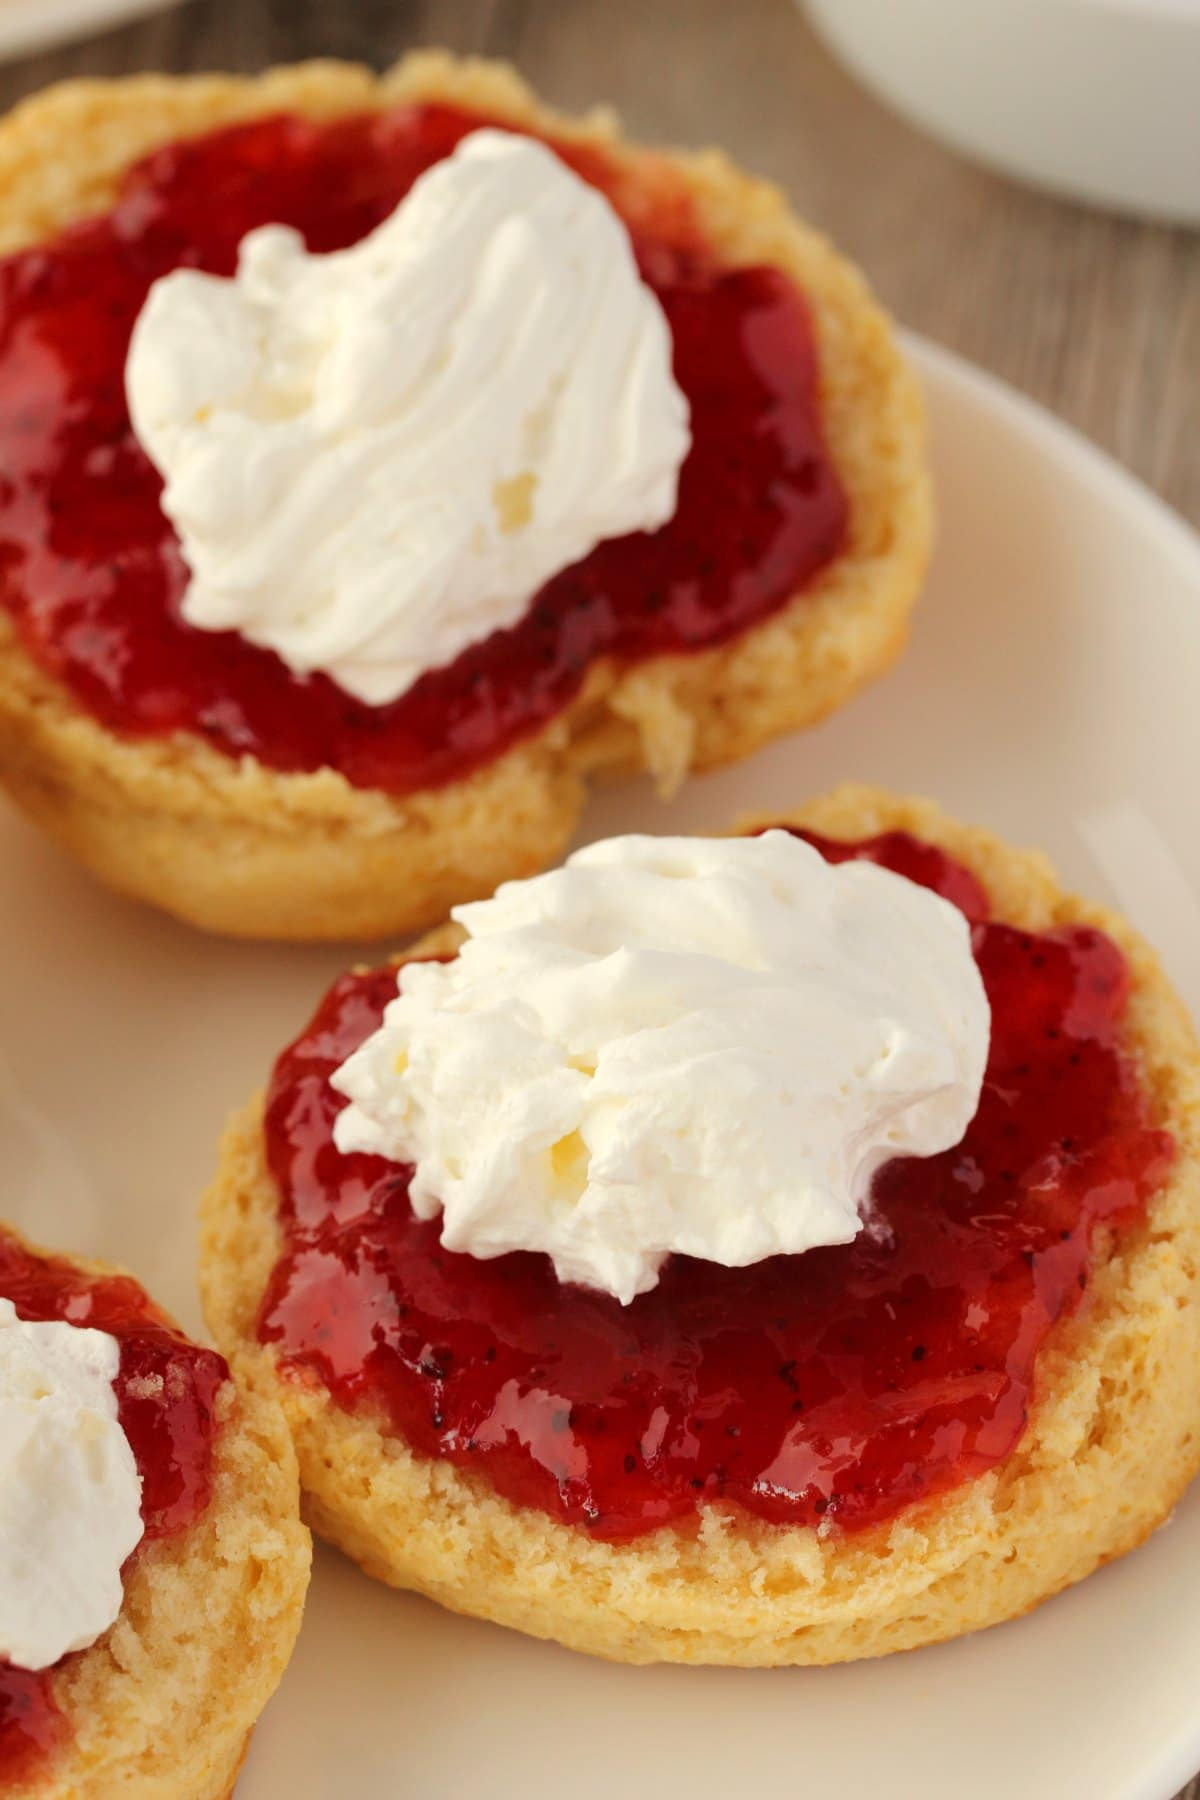 Vegan Scones topped with jam and whipped cream on a white plate.